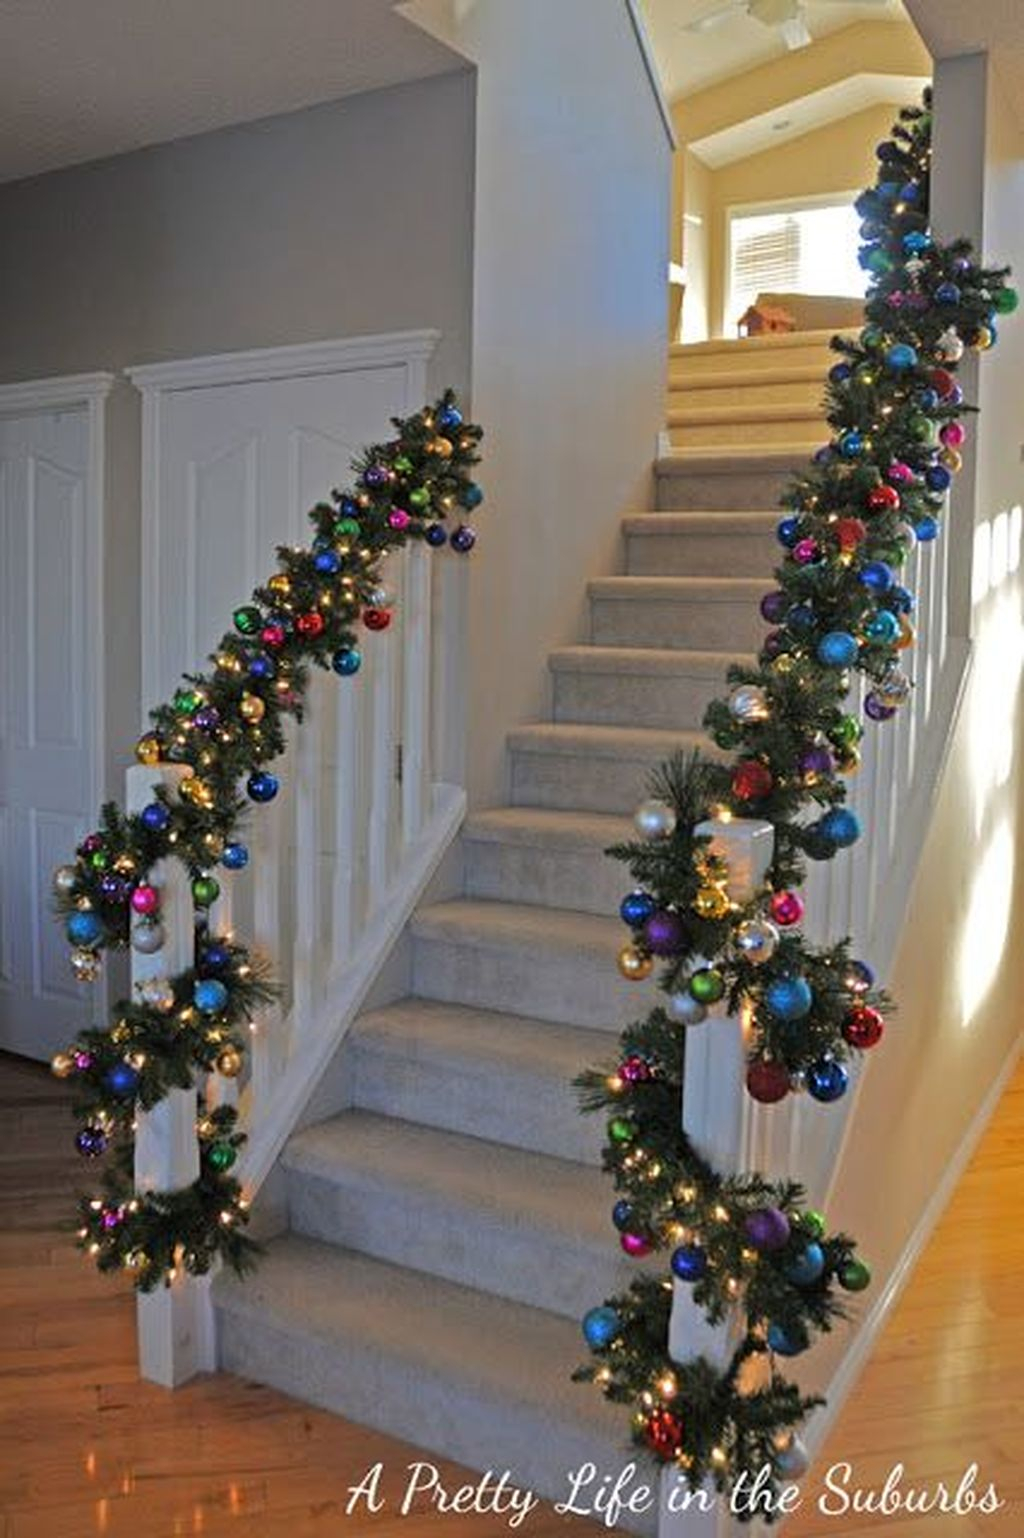 36 Charming Winter Staircase Design Ideas With Banister Ornaments To Try Asap